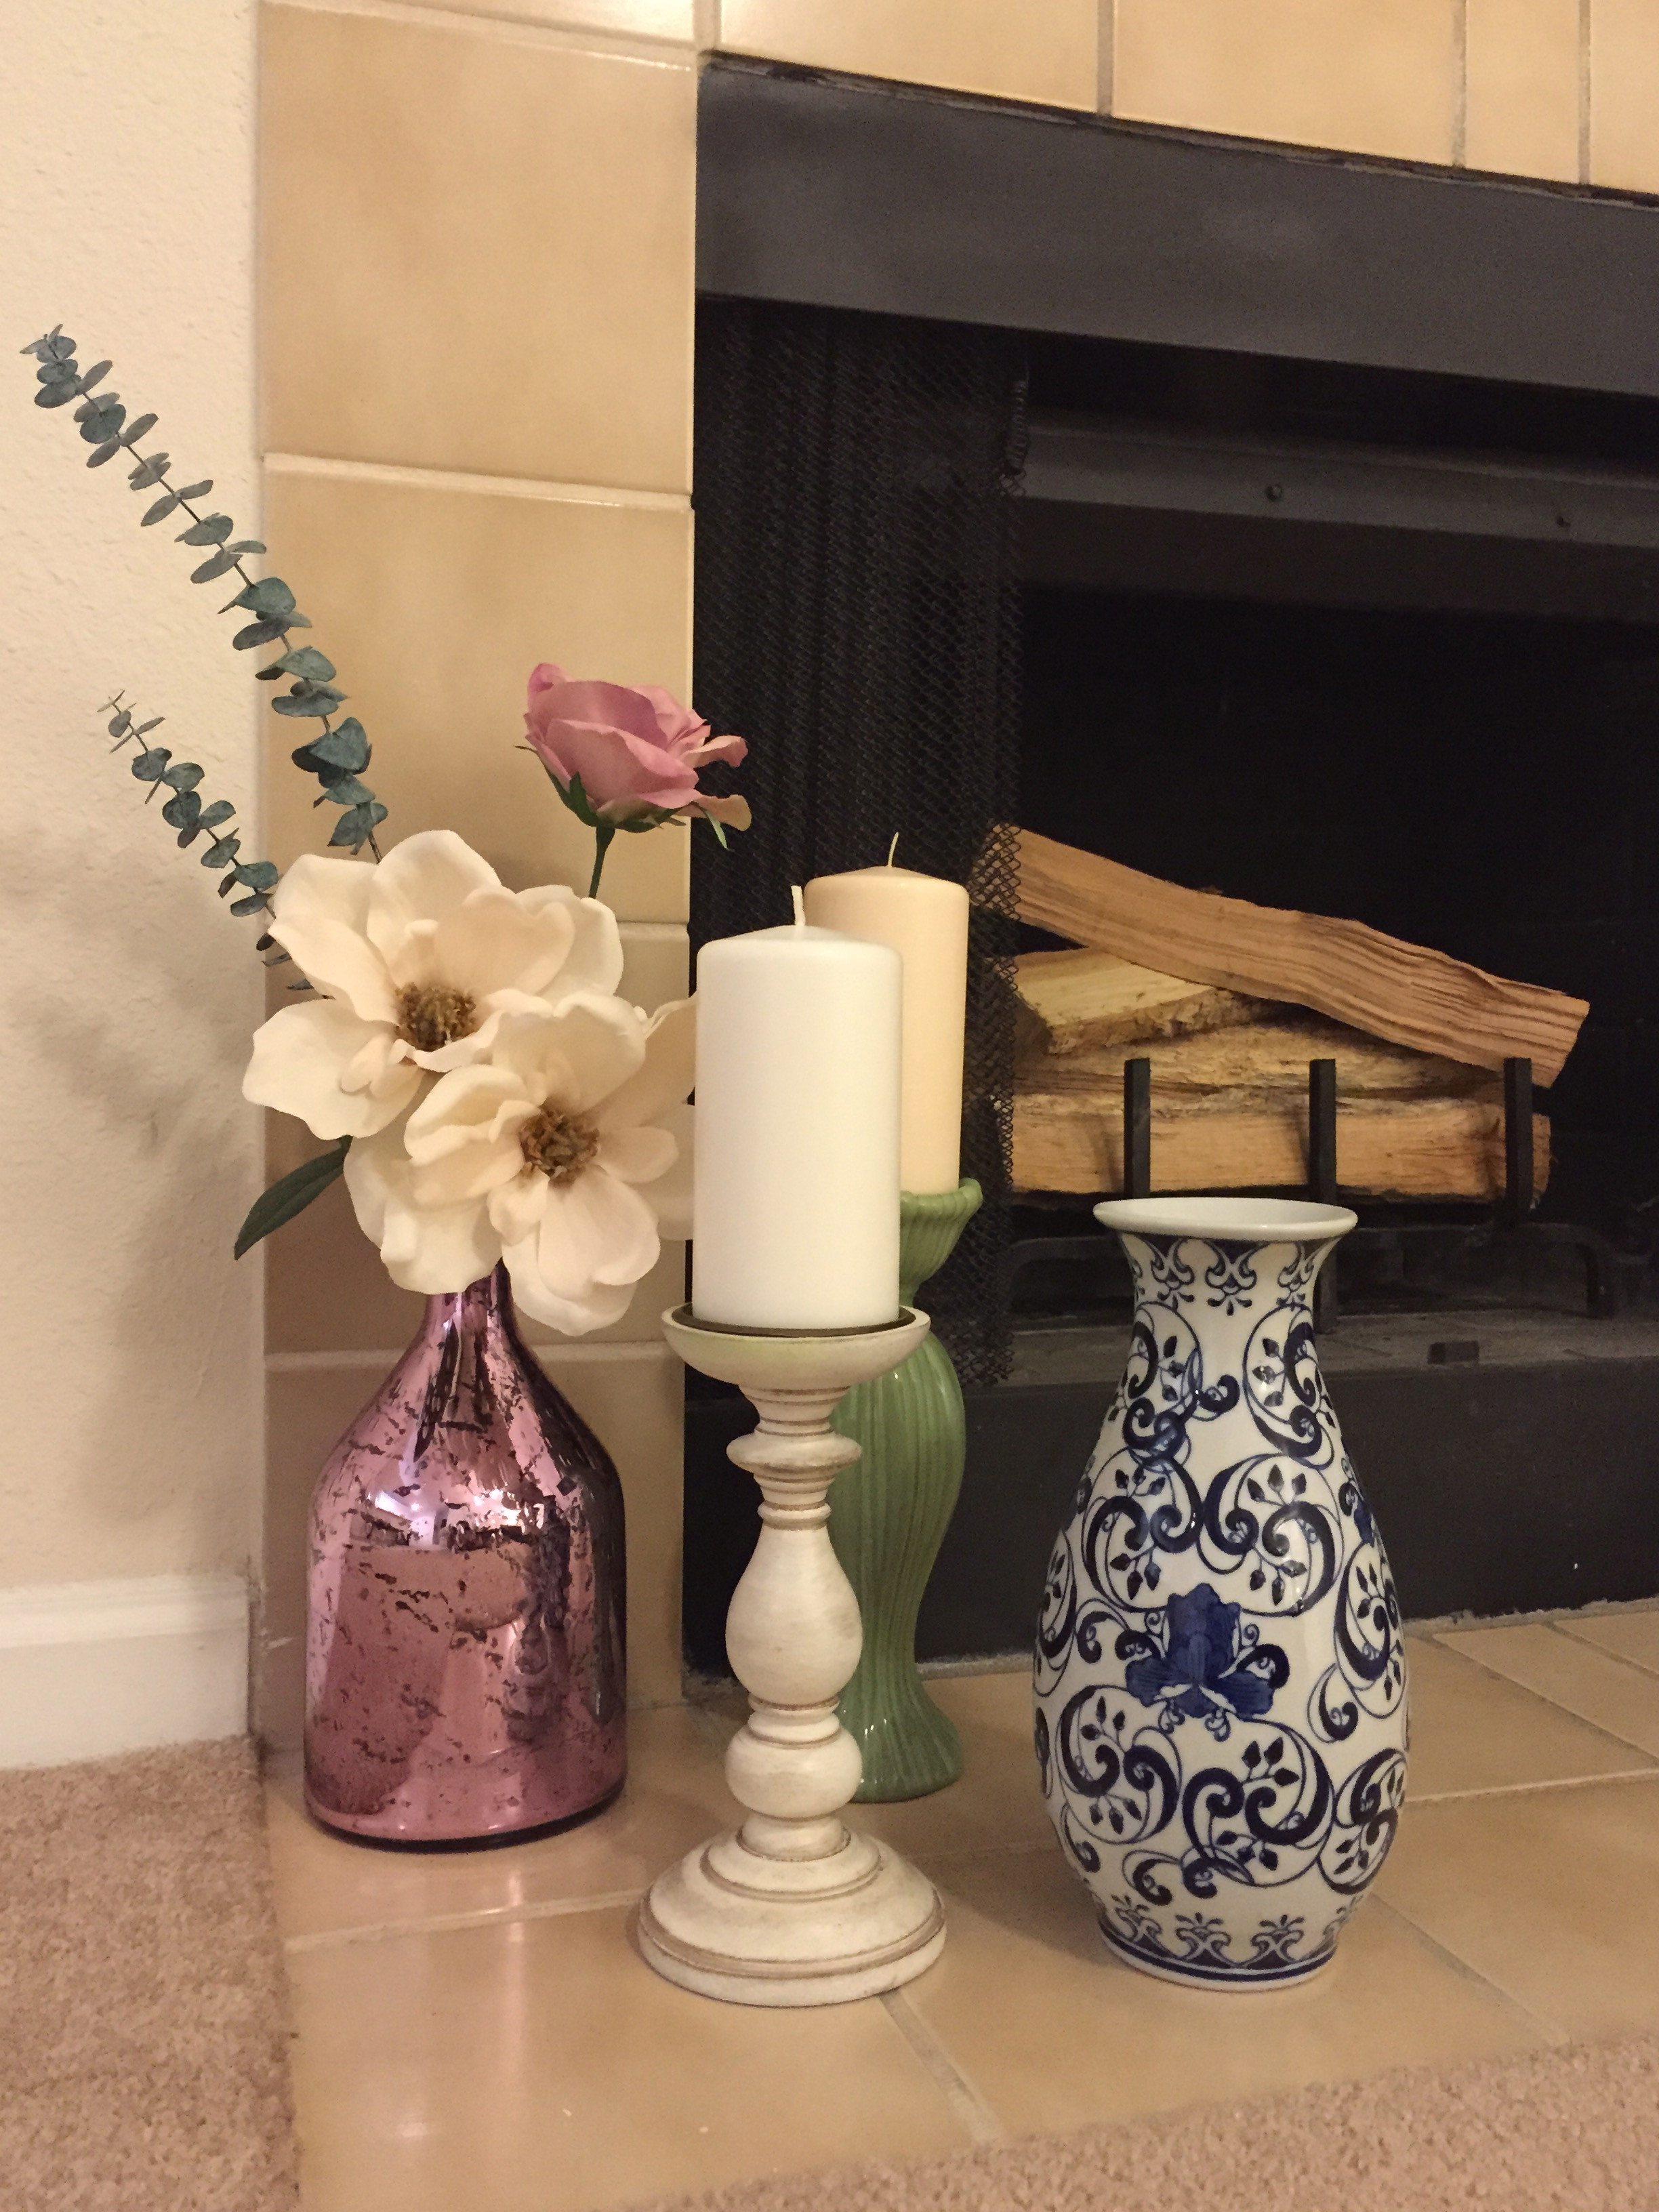 tj maxx vases home decor of decor daydreams do come true part ii mantle hearth coffee in i loved how the white and soft peachy nude picked up on the blushing pink of the magnolia flowers